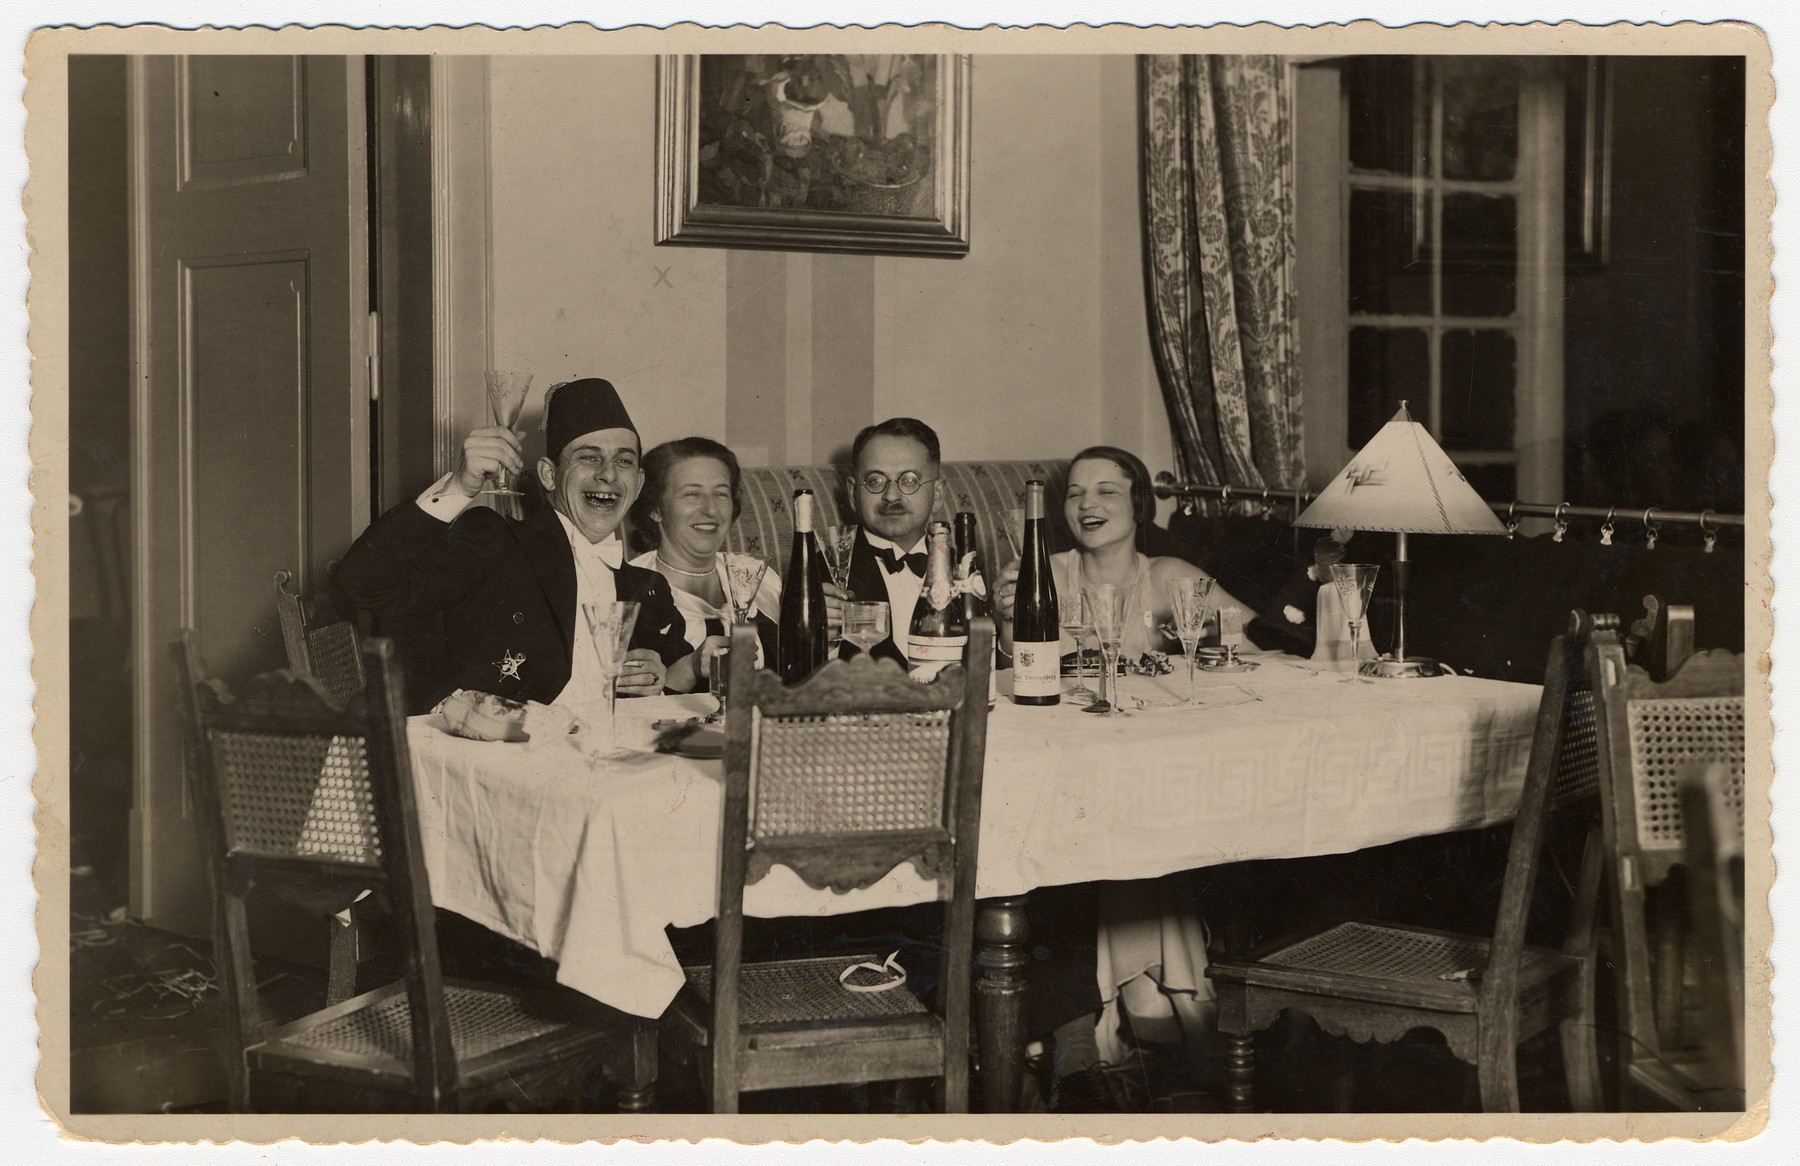 Two German-Jewish couples toast in the New Year.  Seated on the right are Dr. Hans Adolf and Augusta Brager Bujakowski.